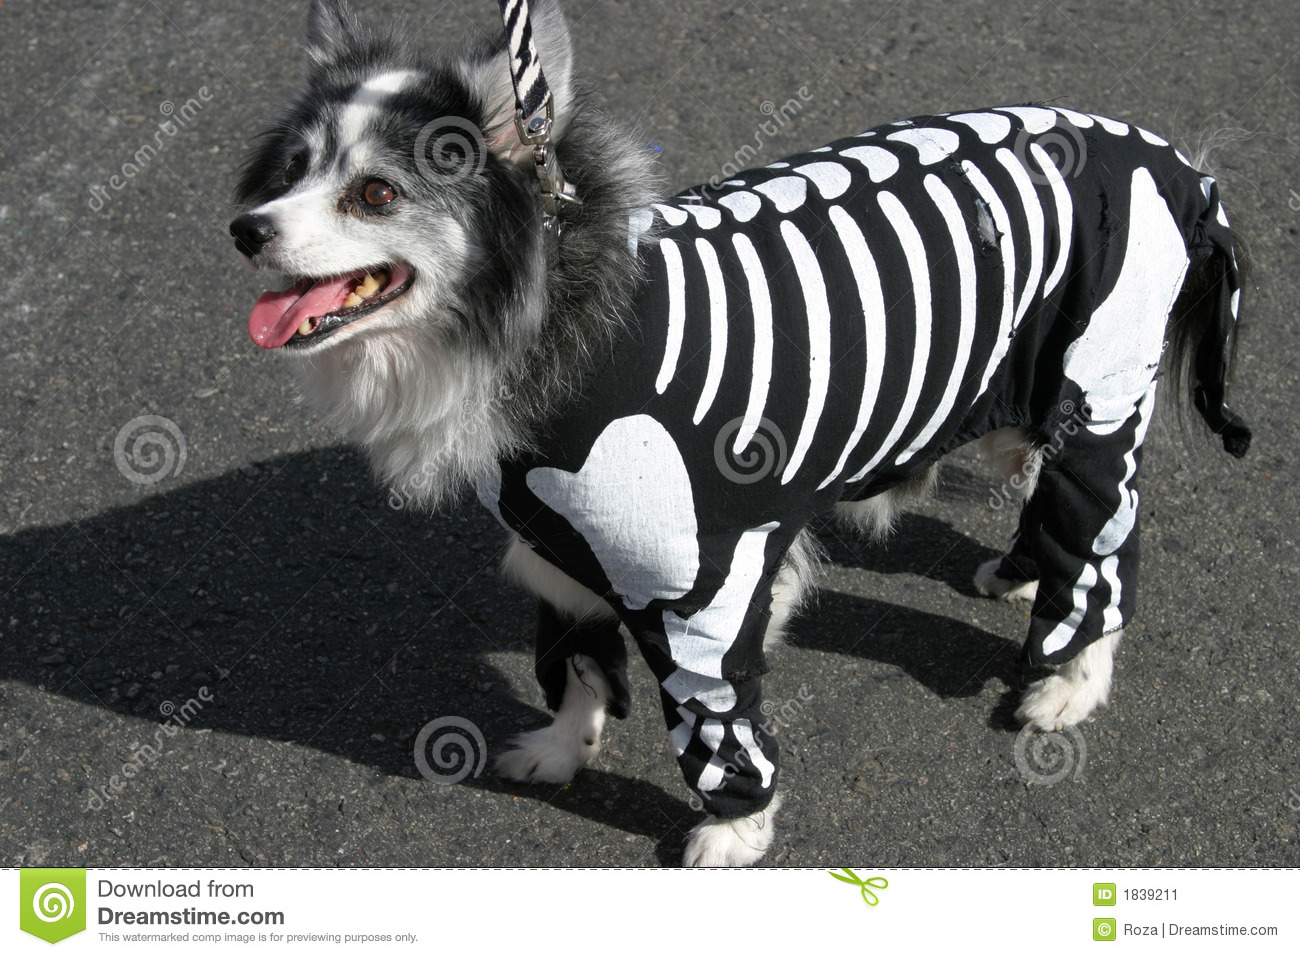 Small dog in skeleton costume costume on Halloween.